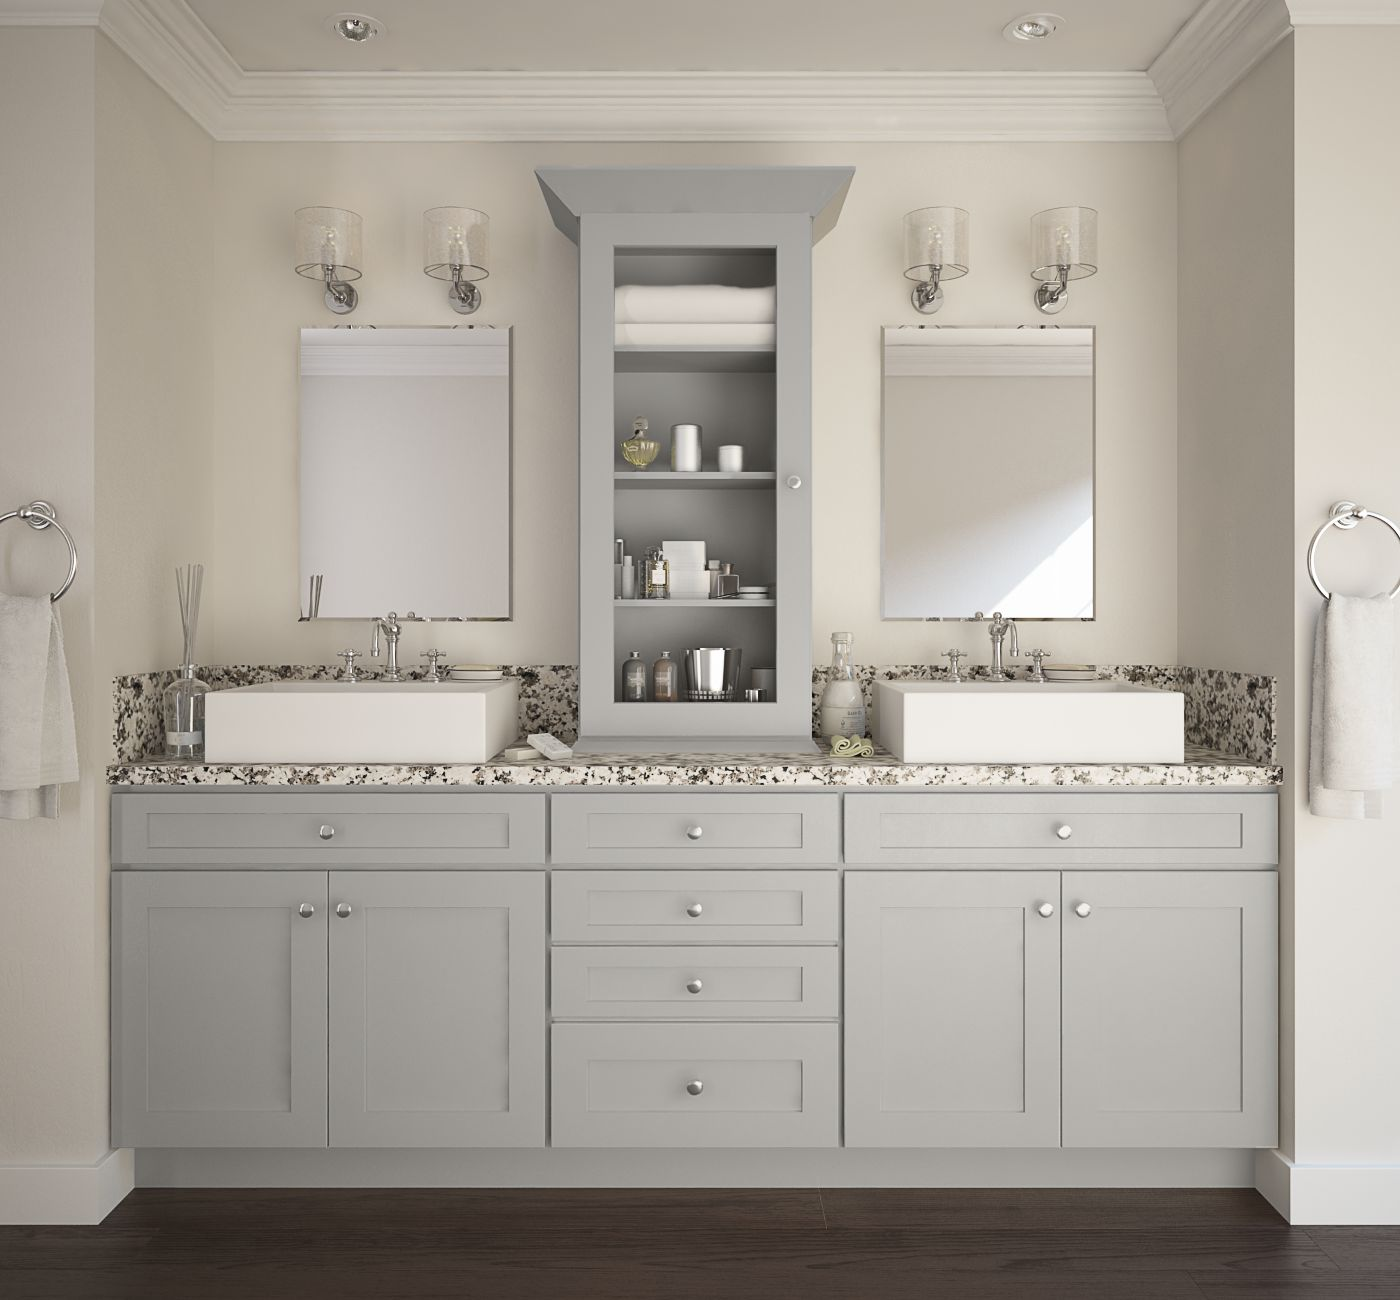 Preassembled Kitchen Cabinets: Society Shaker Dove Gray Pre-Assembled Kitchen Cabinets